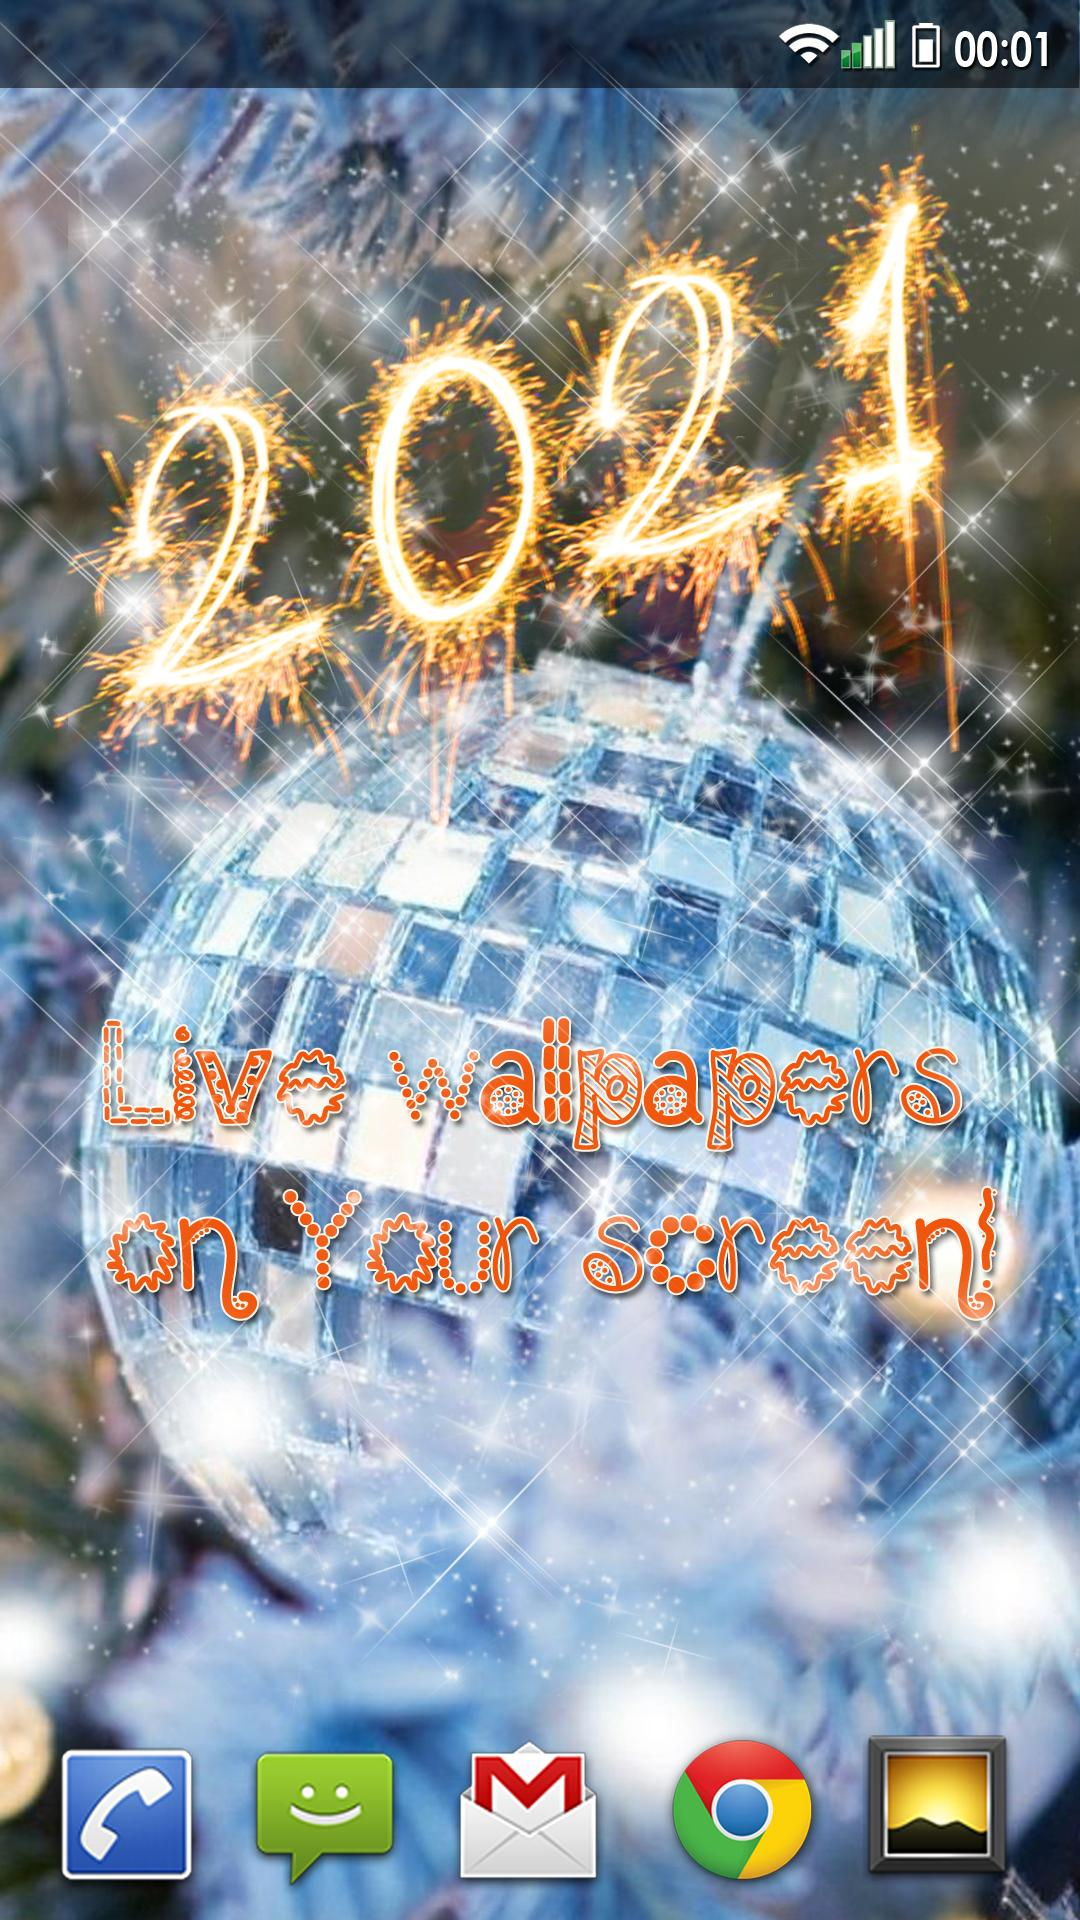 happy new year wallpaper 2021 holiday background for android apk download happy new year wallpaper 2021 holiday